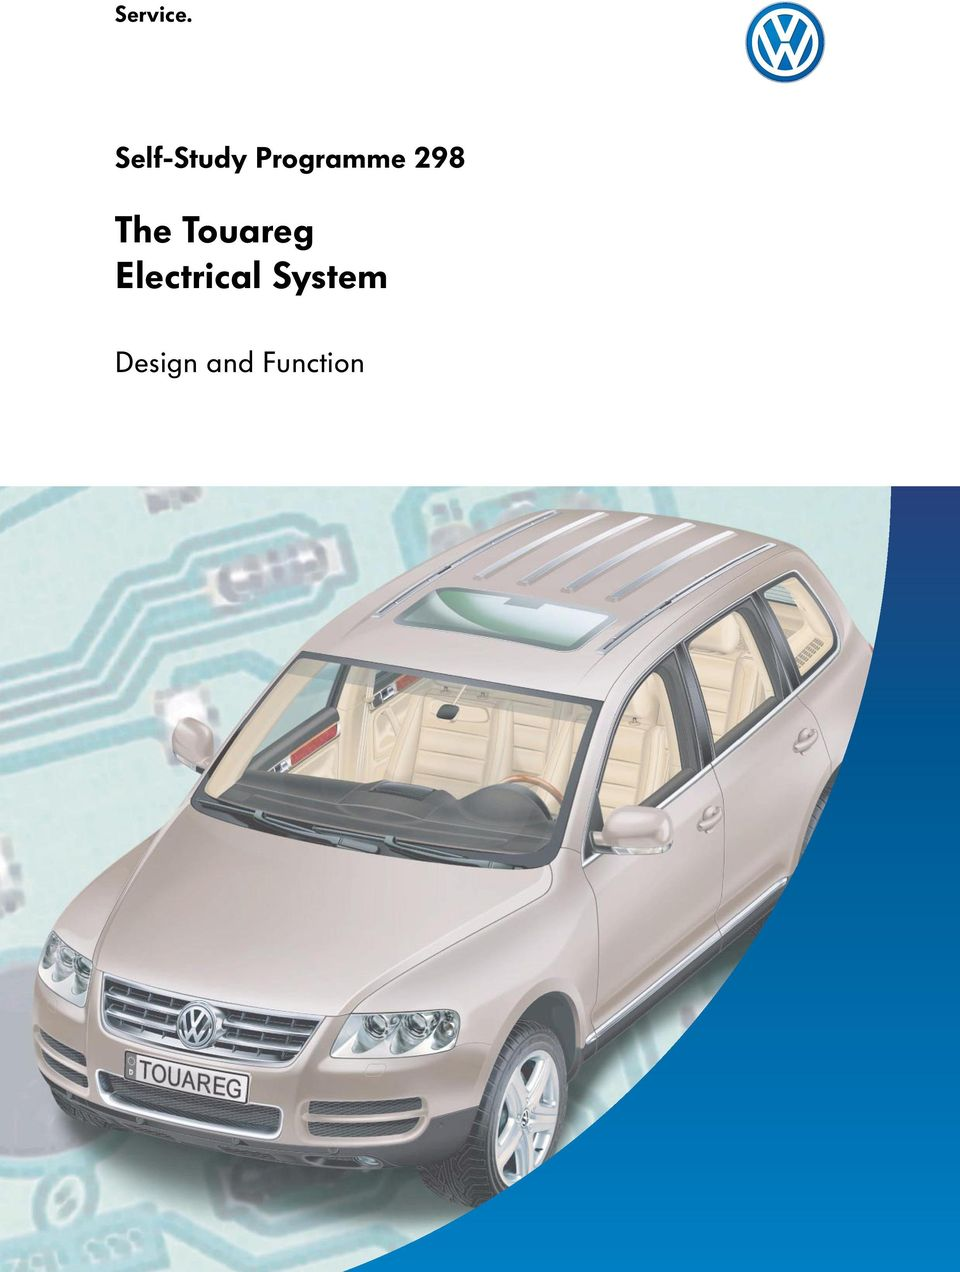 The touareg electrical system pdf 298 the touareg swarovskicordoba Image collections